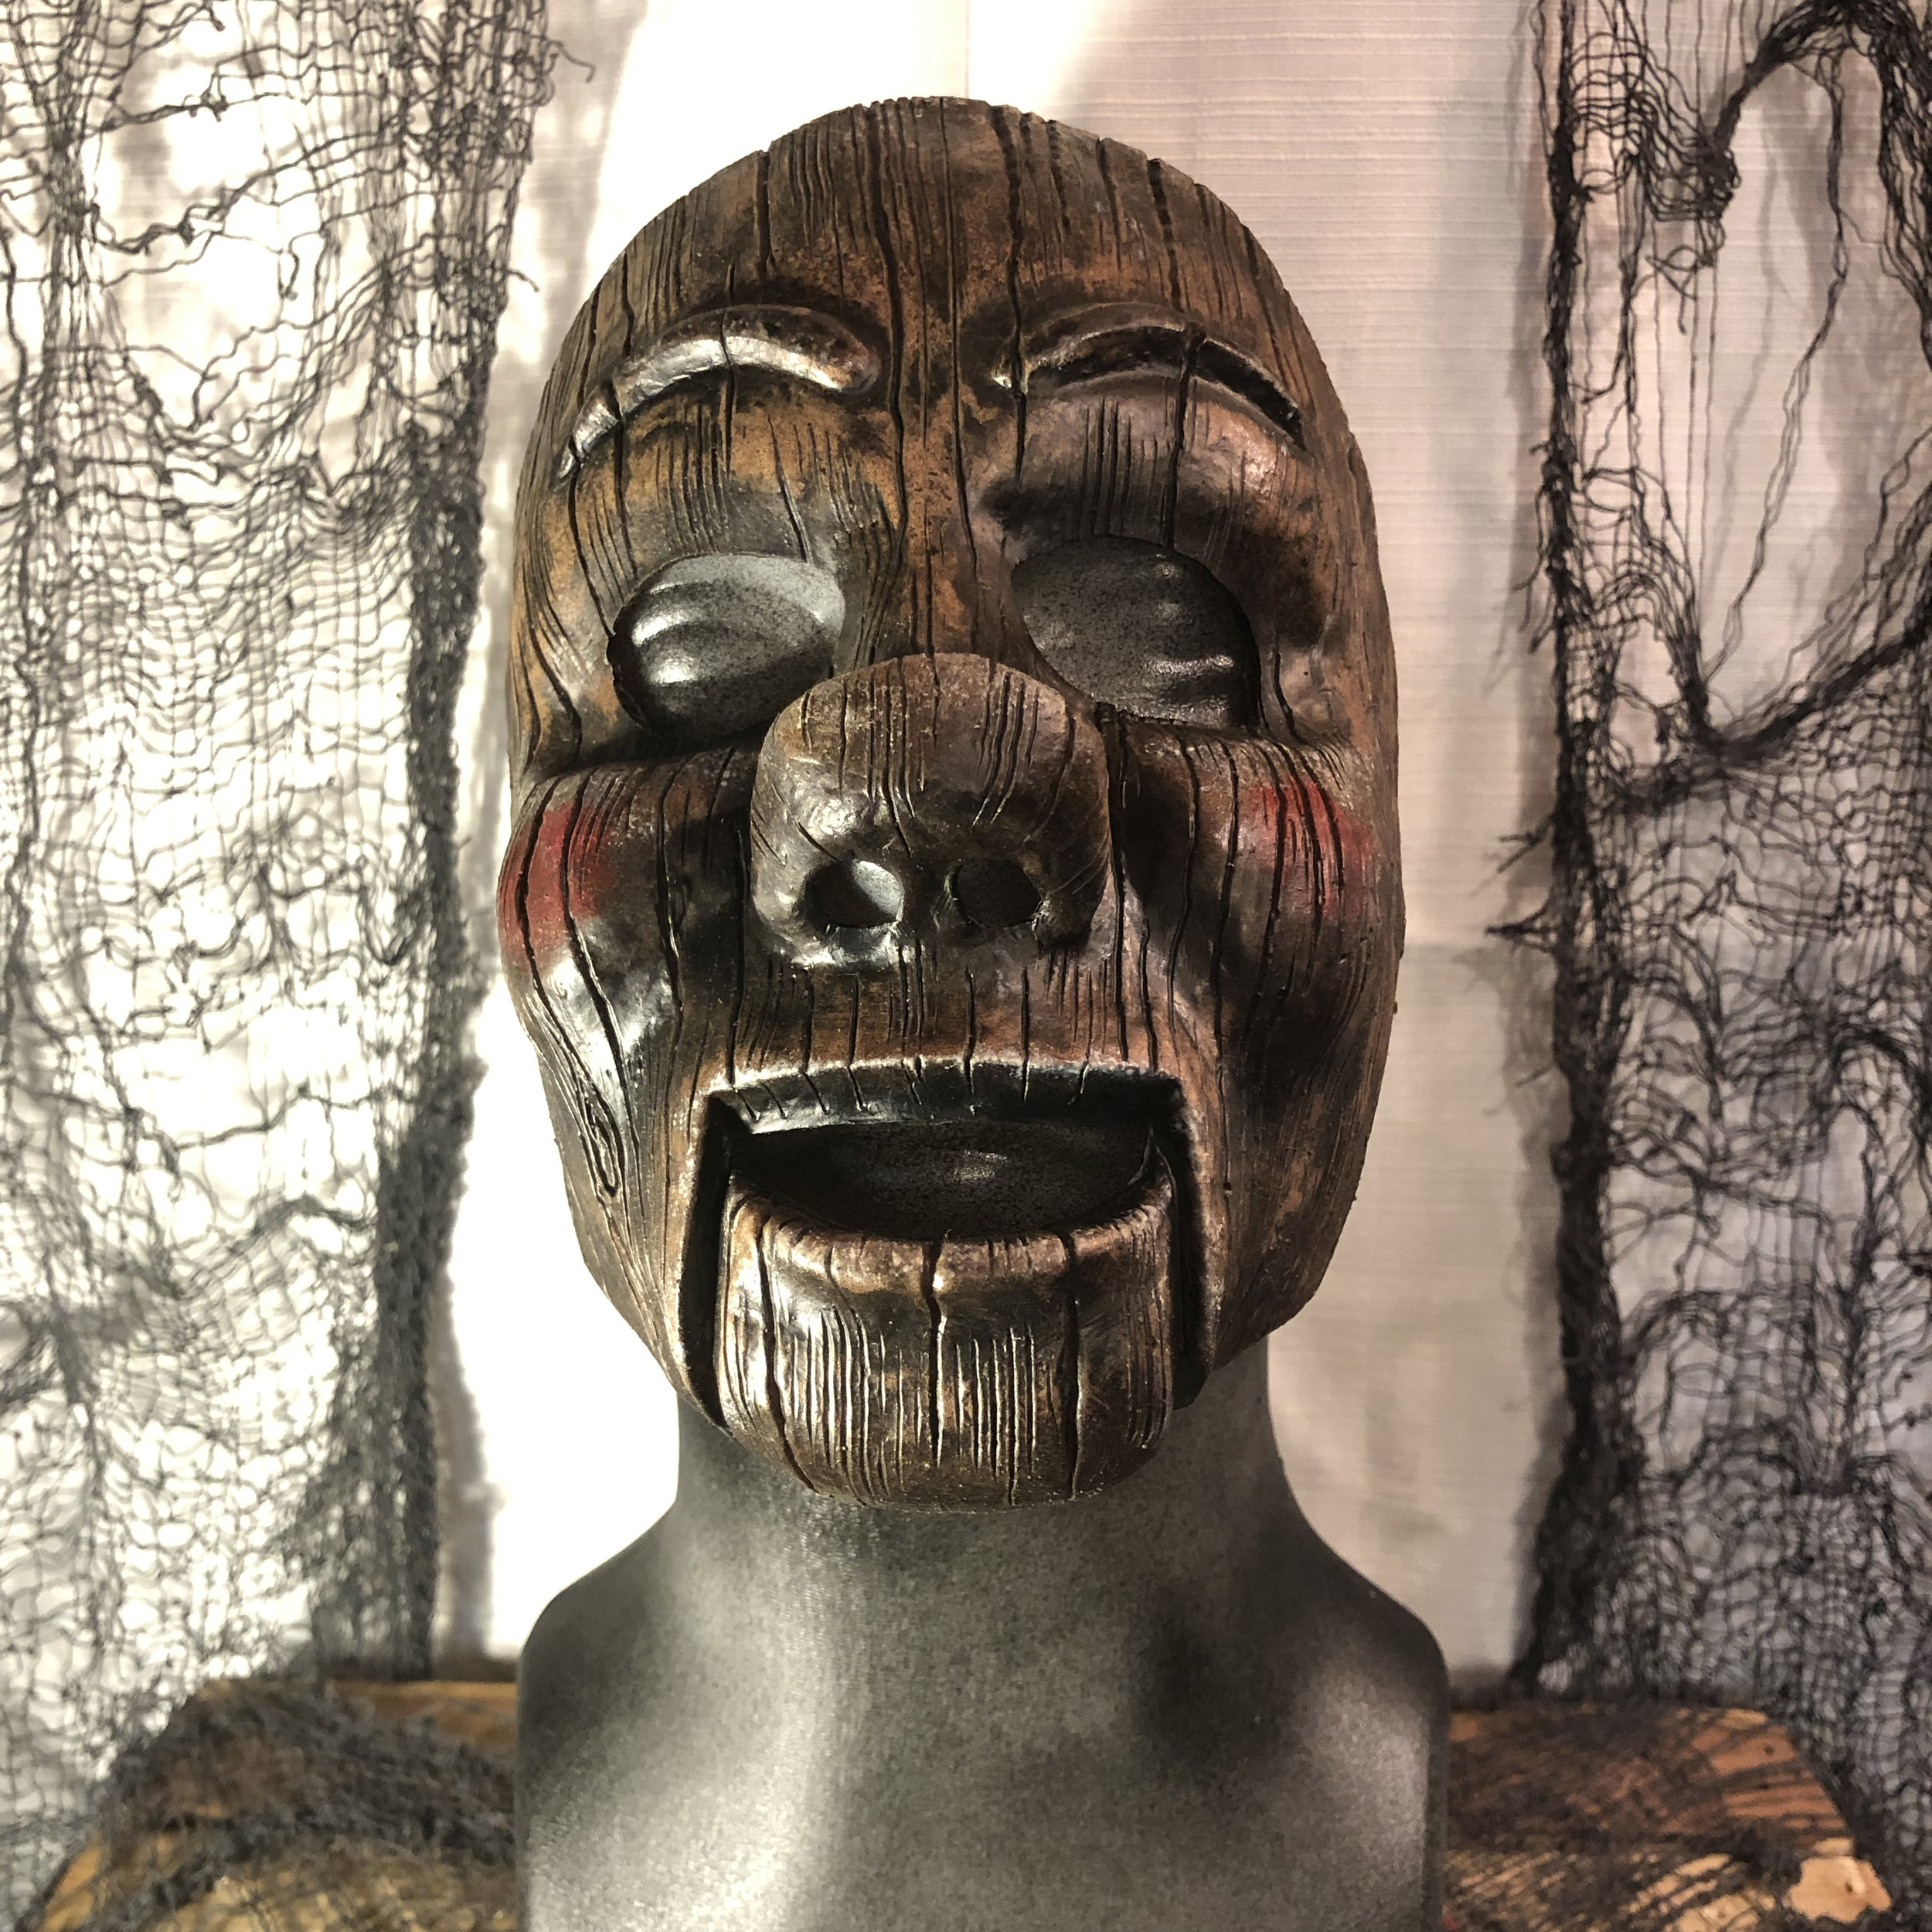 Dudley  $80.00  Become this wise cracking, wooden doll.  Dudley's mask fits similar to a face prosthetic, not full coverage.  100% Natural Latex Mask